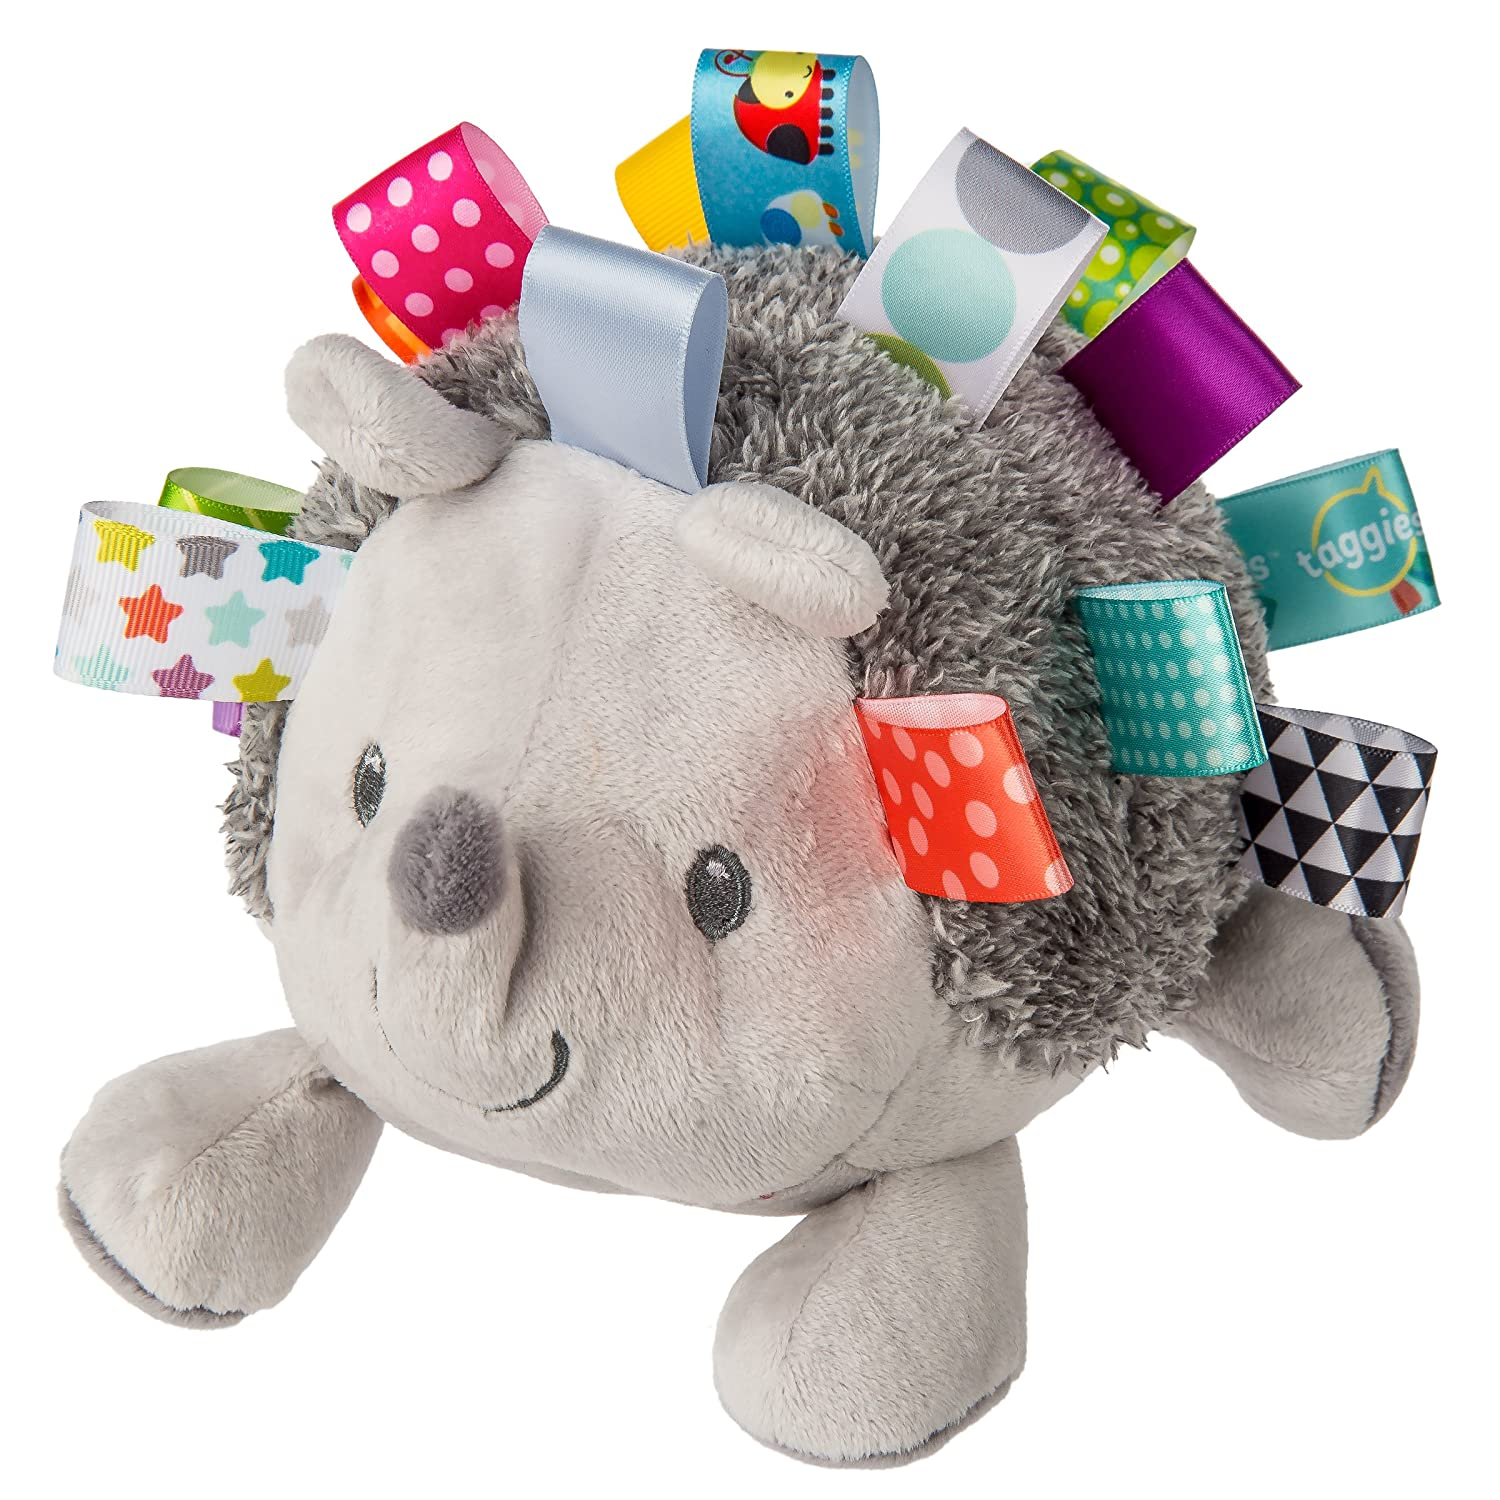 Mary Meyer Taggies Max supreme 73% OFF Soft Hedgehog Toy Heather